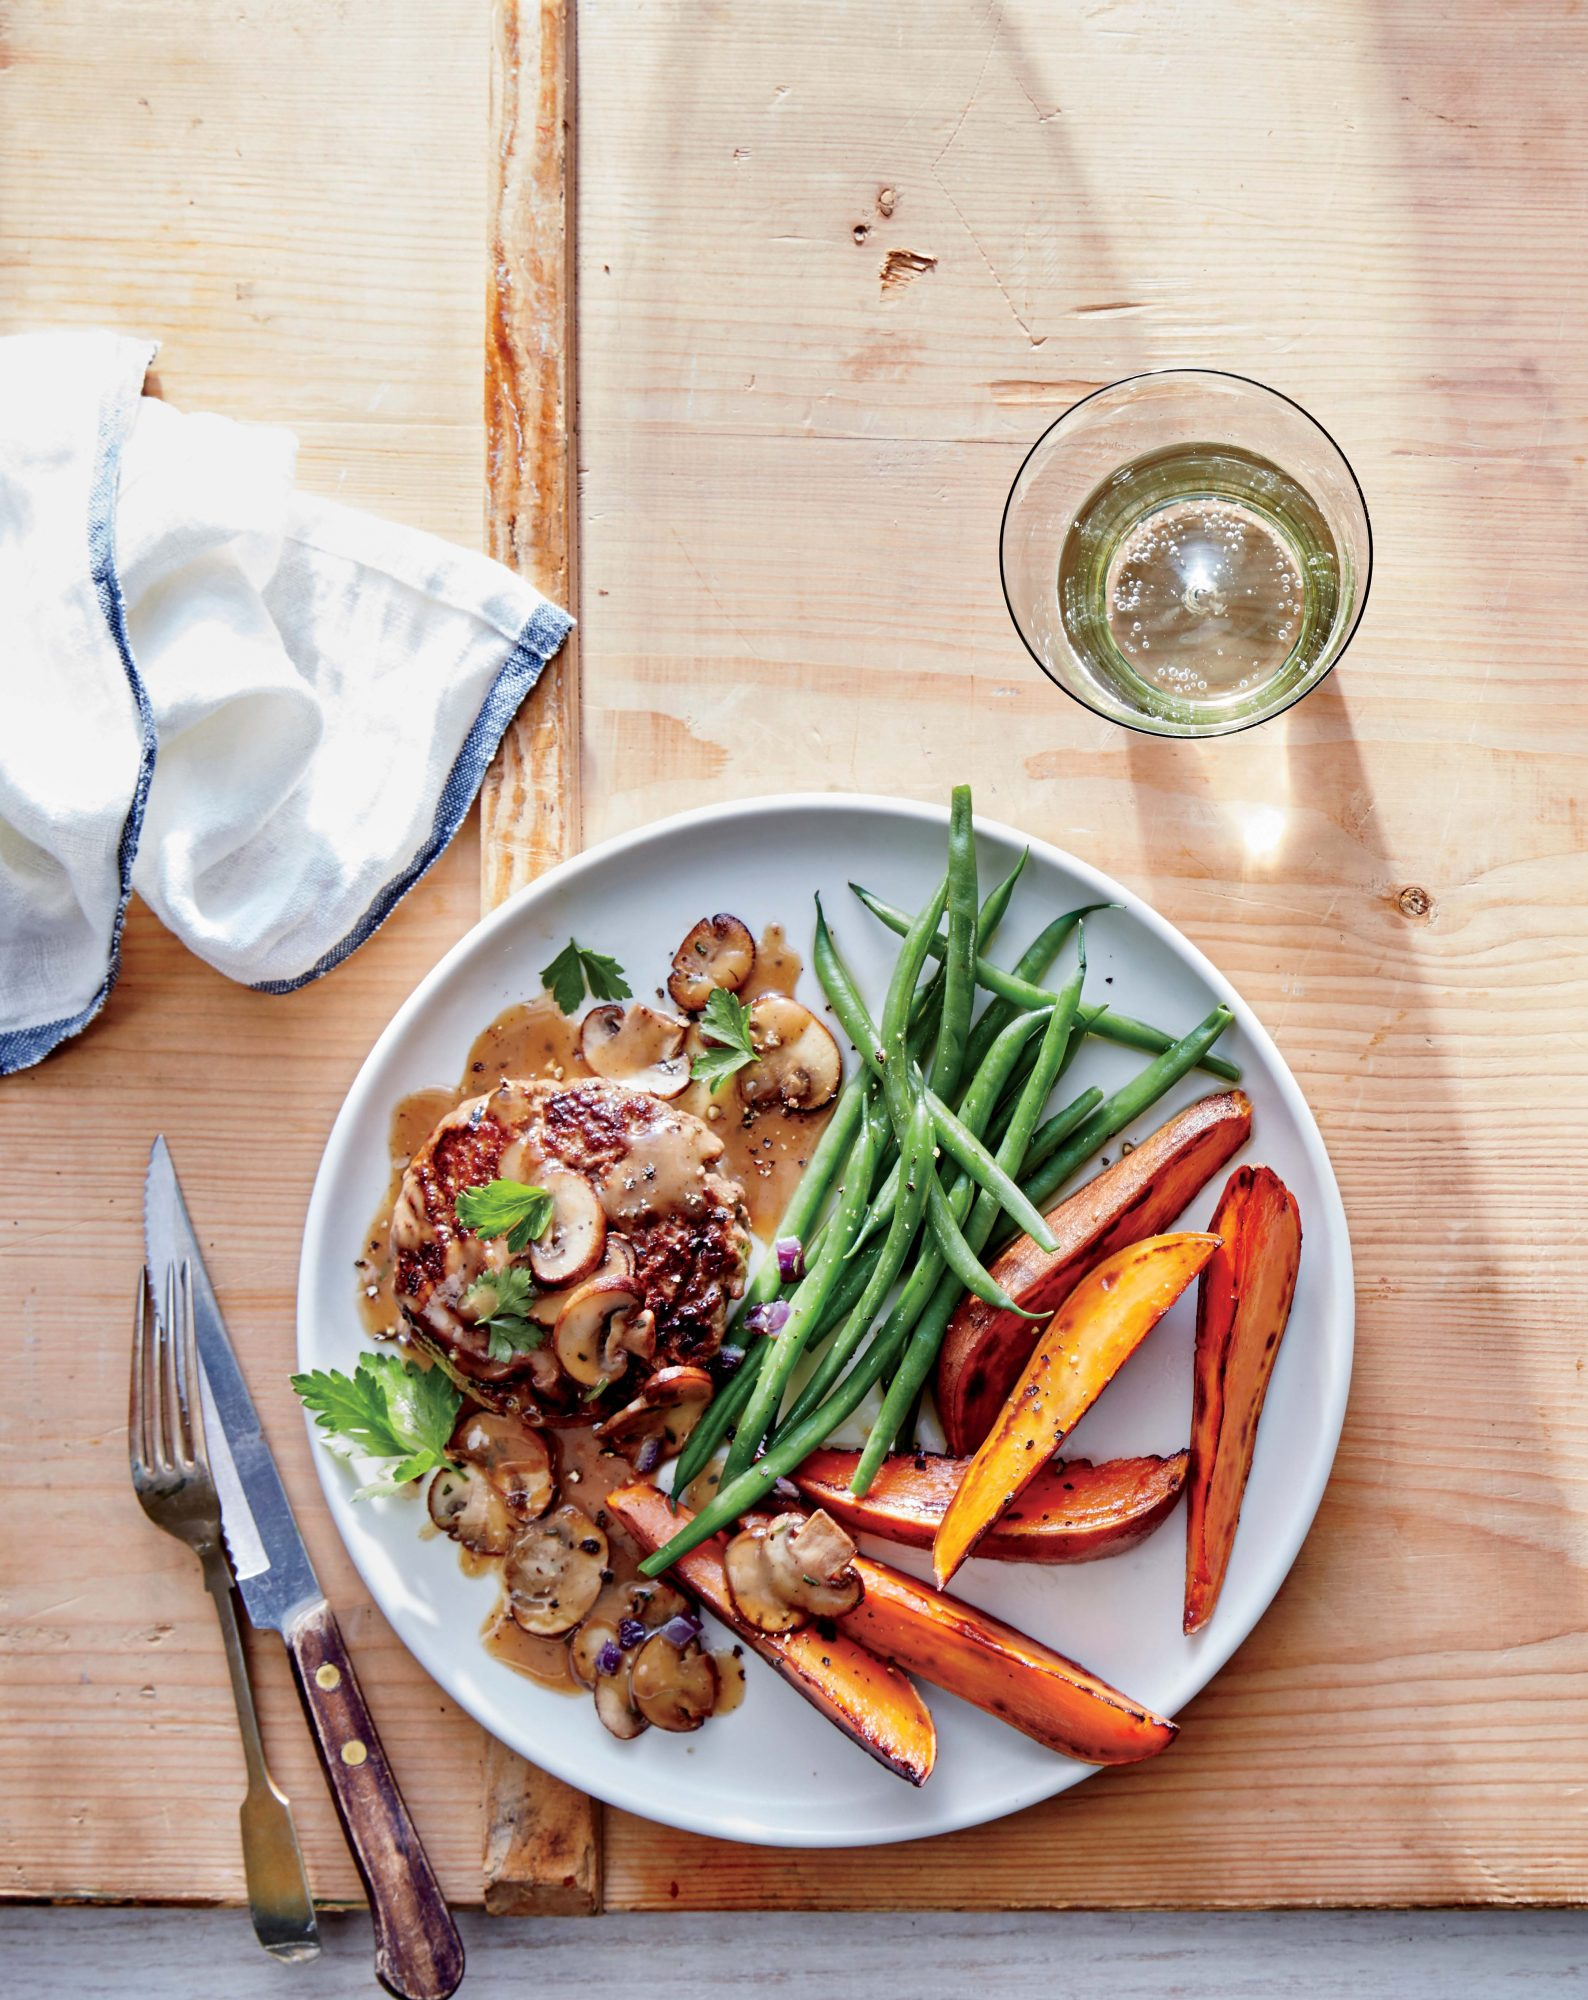 Burger Steaks with Mushroom Gravy, Sweet Potato Wedges, and Haricots Verts Image